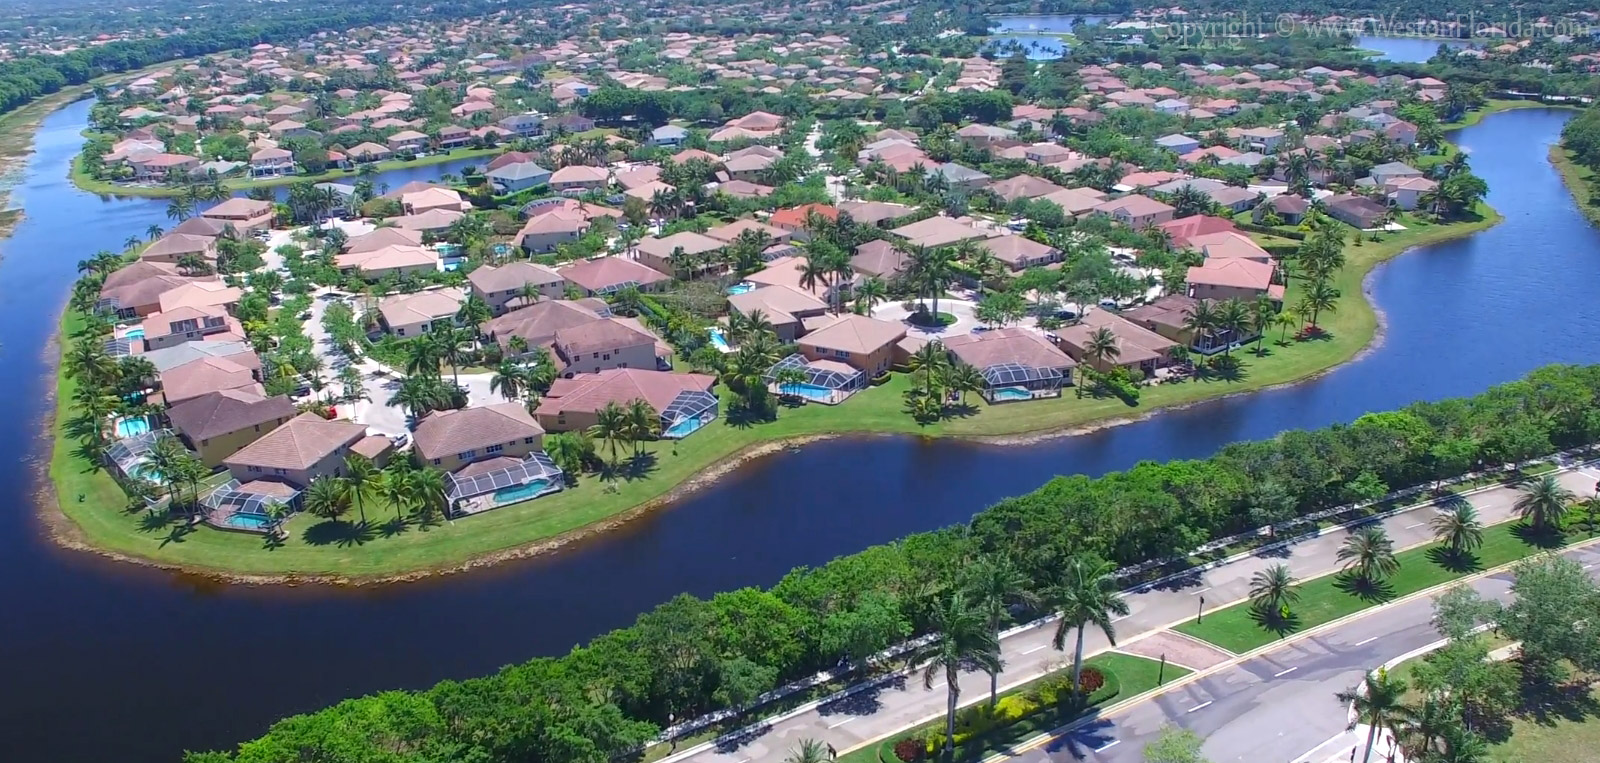 Residential area in Weston Florida